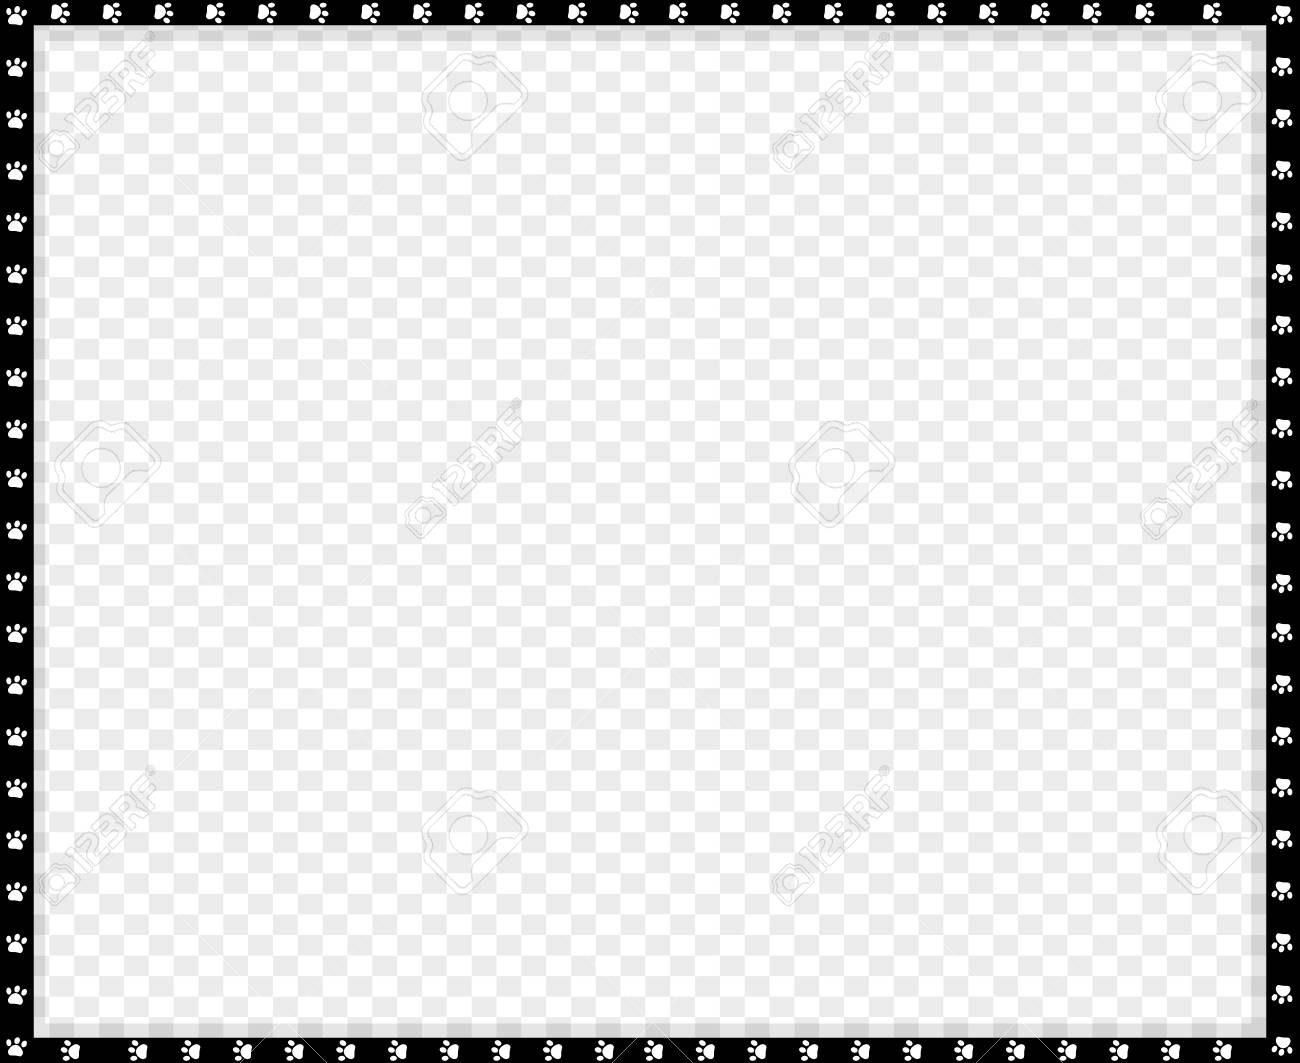 Vector Black And White Rectangle Border Made Of Animal Paw Prints Royalty Free Cliparts Vectors And Stock Illustration Image 114557942